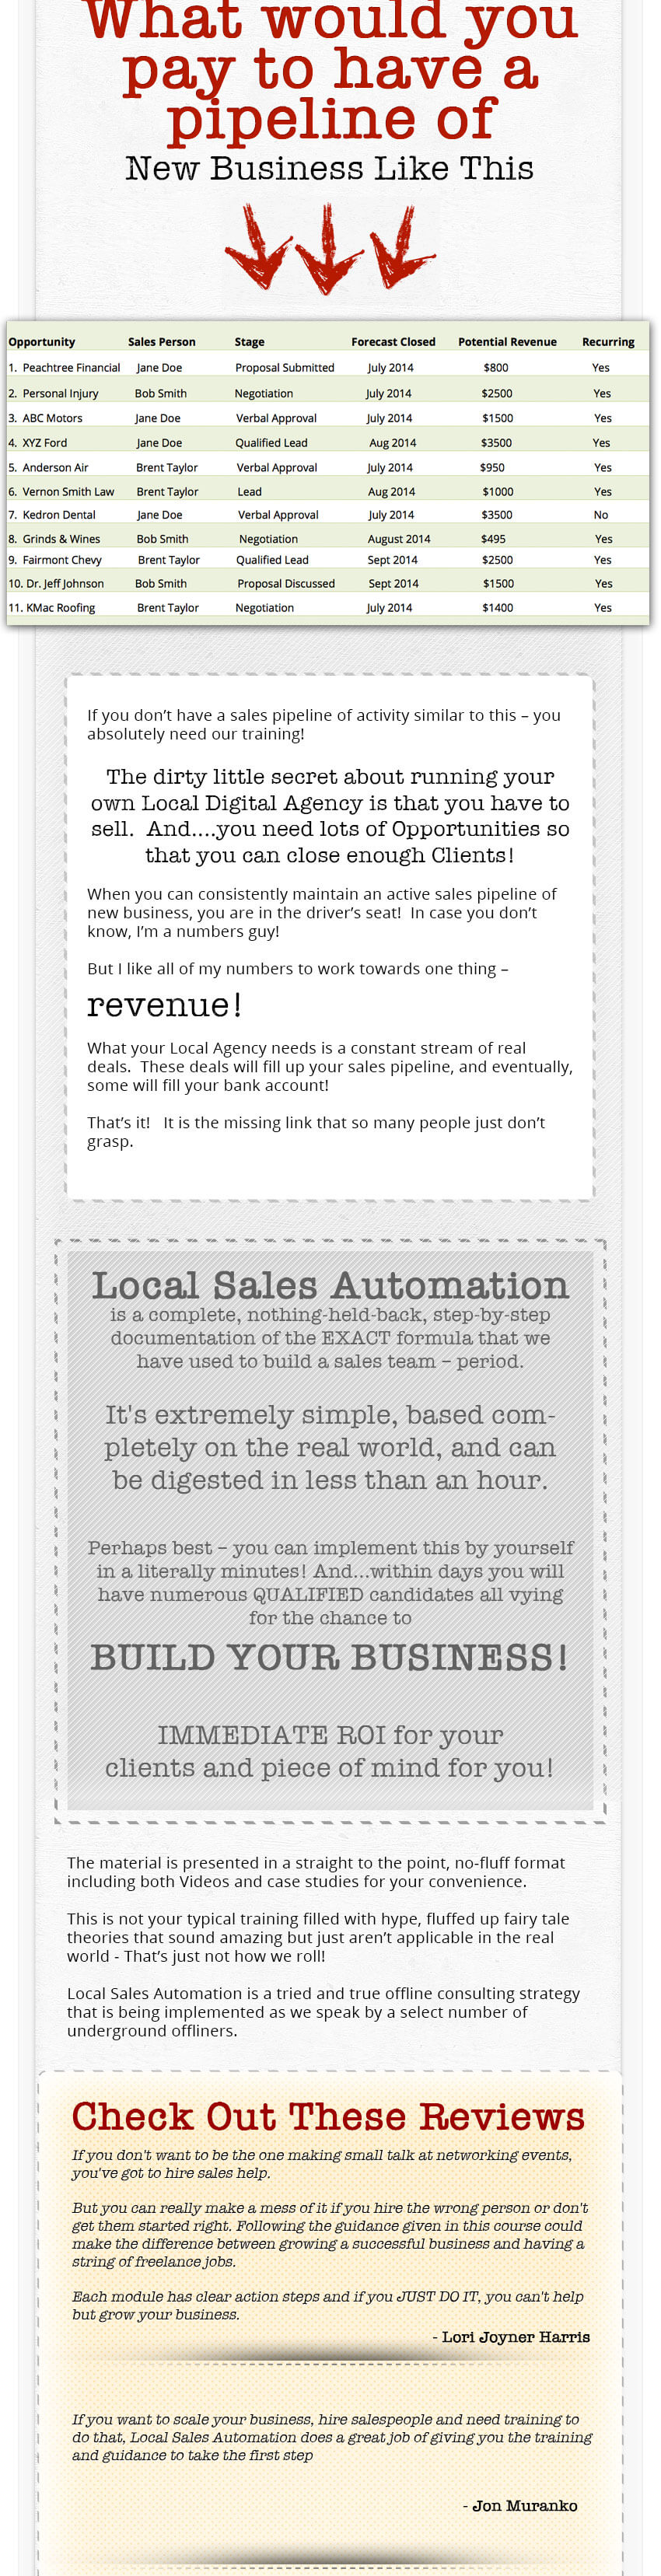 Local Sales Automation - Kevin Wilke, Ed Downes, Brian Anderson WSO_04